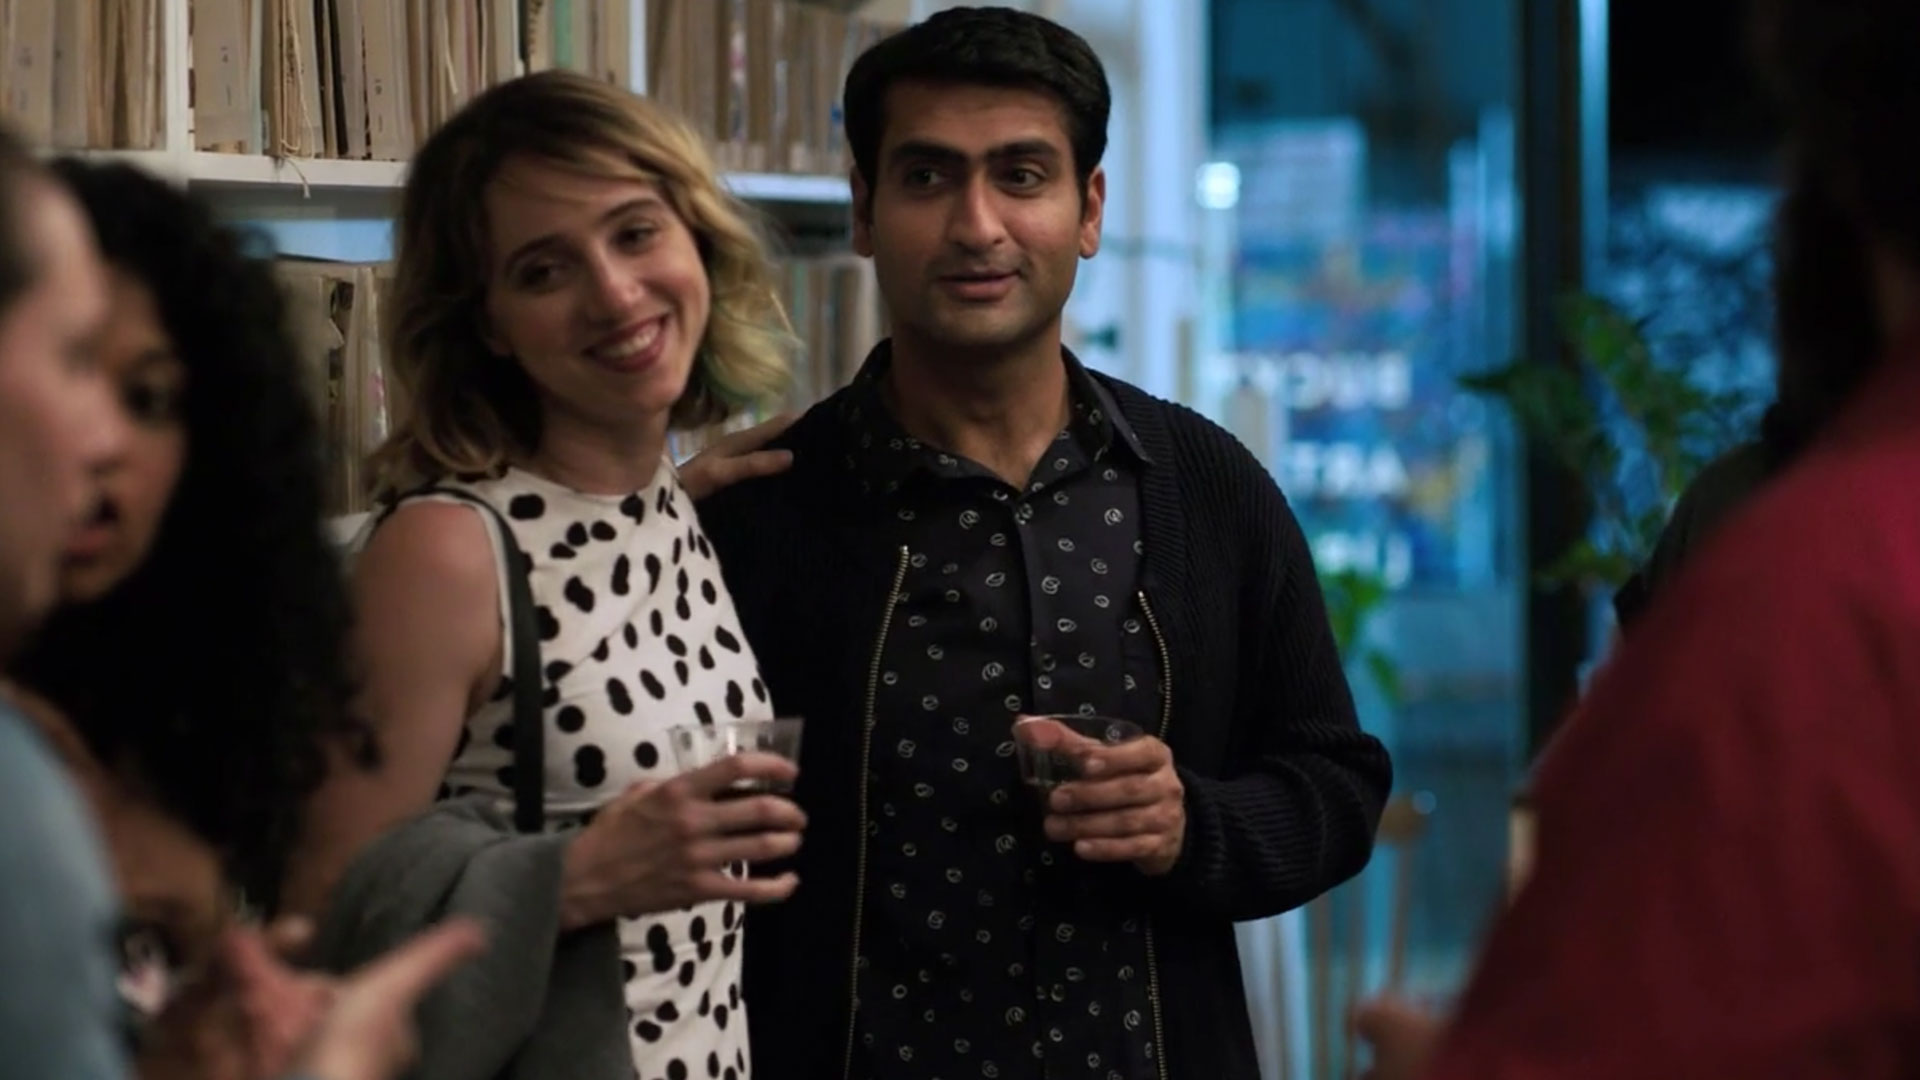 The Big Sick — Surprises